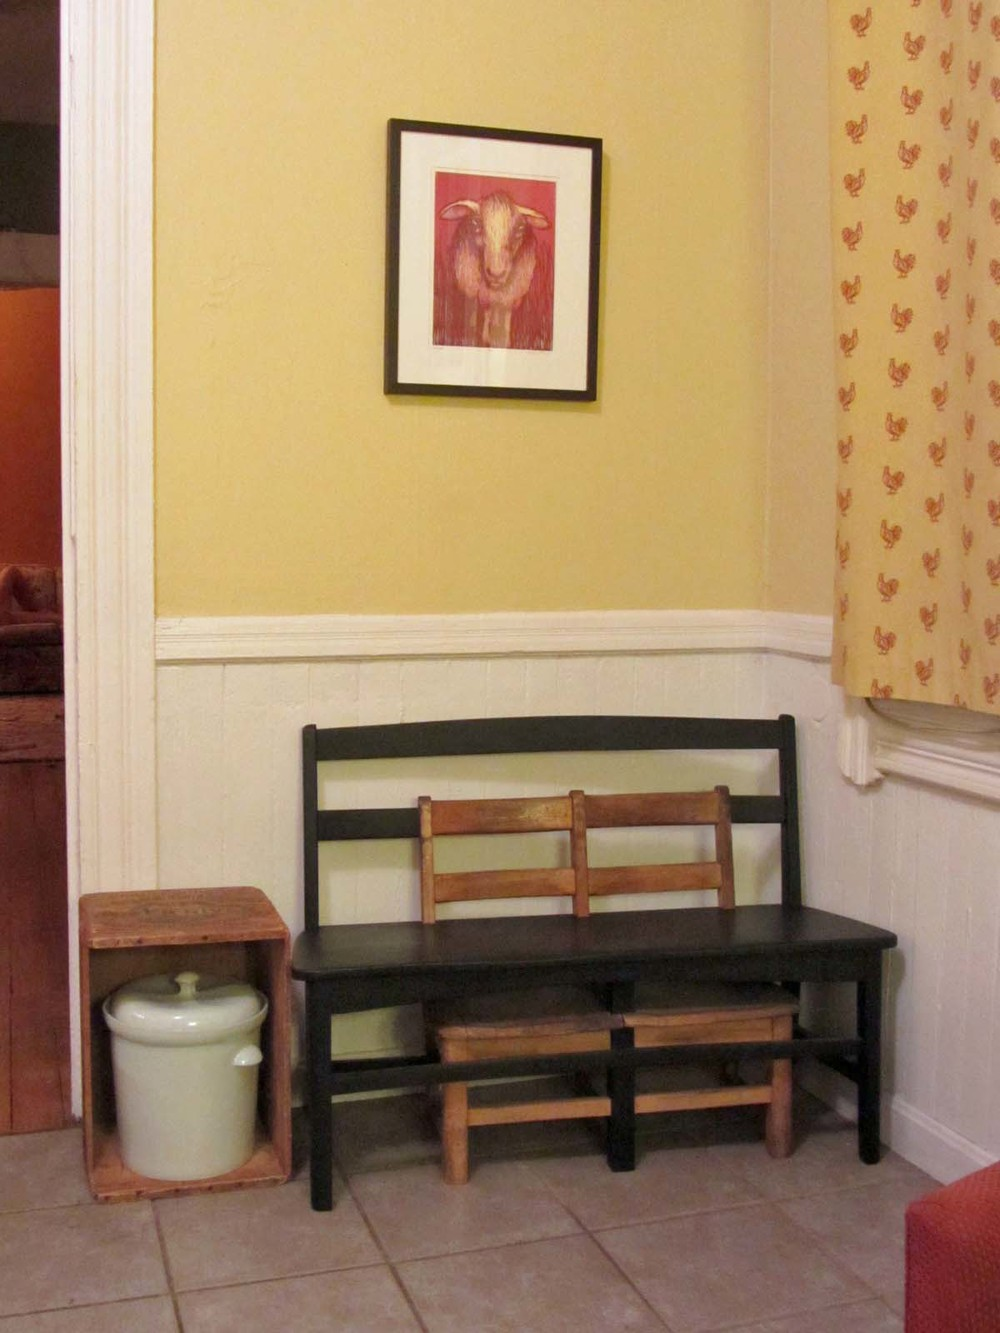 Tom Shields' bench, Ian Henderson's fermentation crock, Eleanor Annand's print